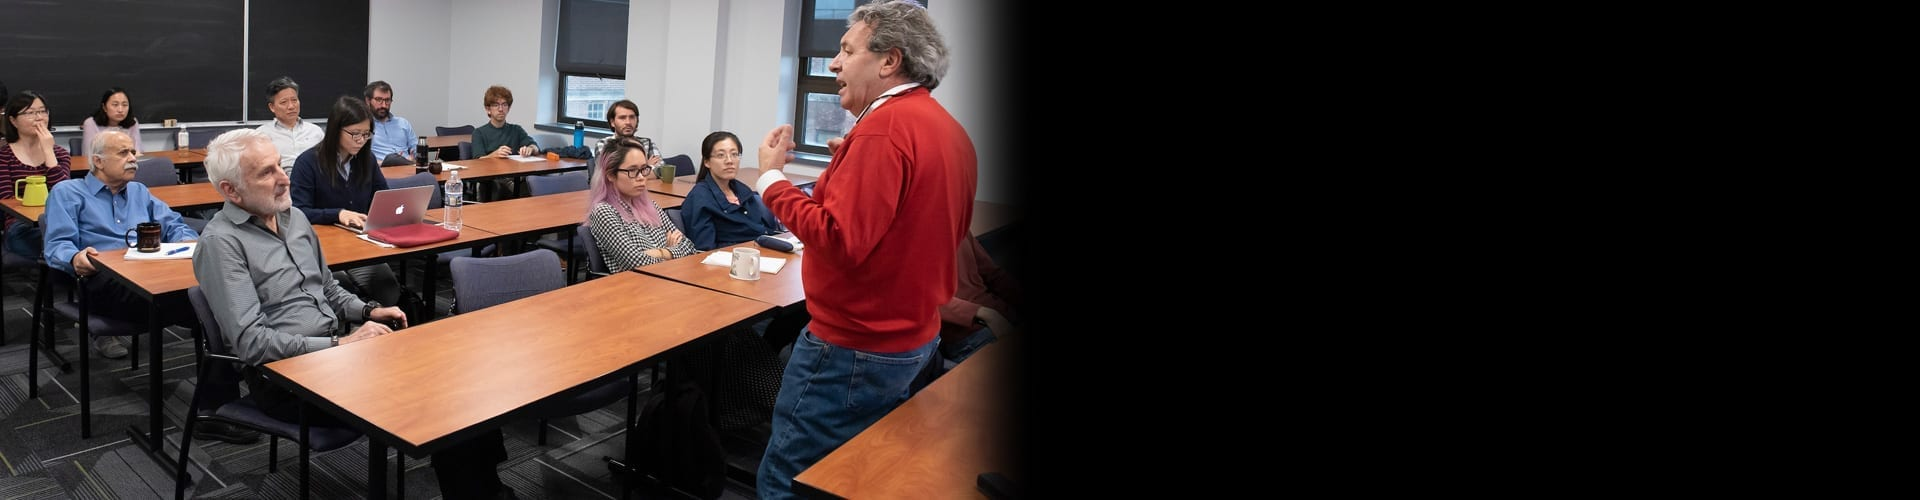 Department research covers applied microeconomics, econometrics, economic theory, finance, and macroeconomics. In addition to three weekly seminars, the department hosts conferences and special lectures within these five disciplines.